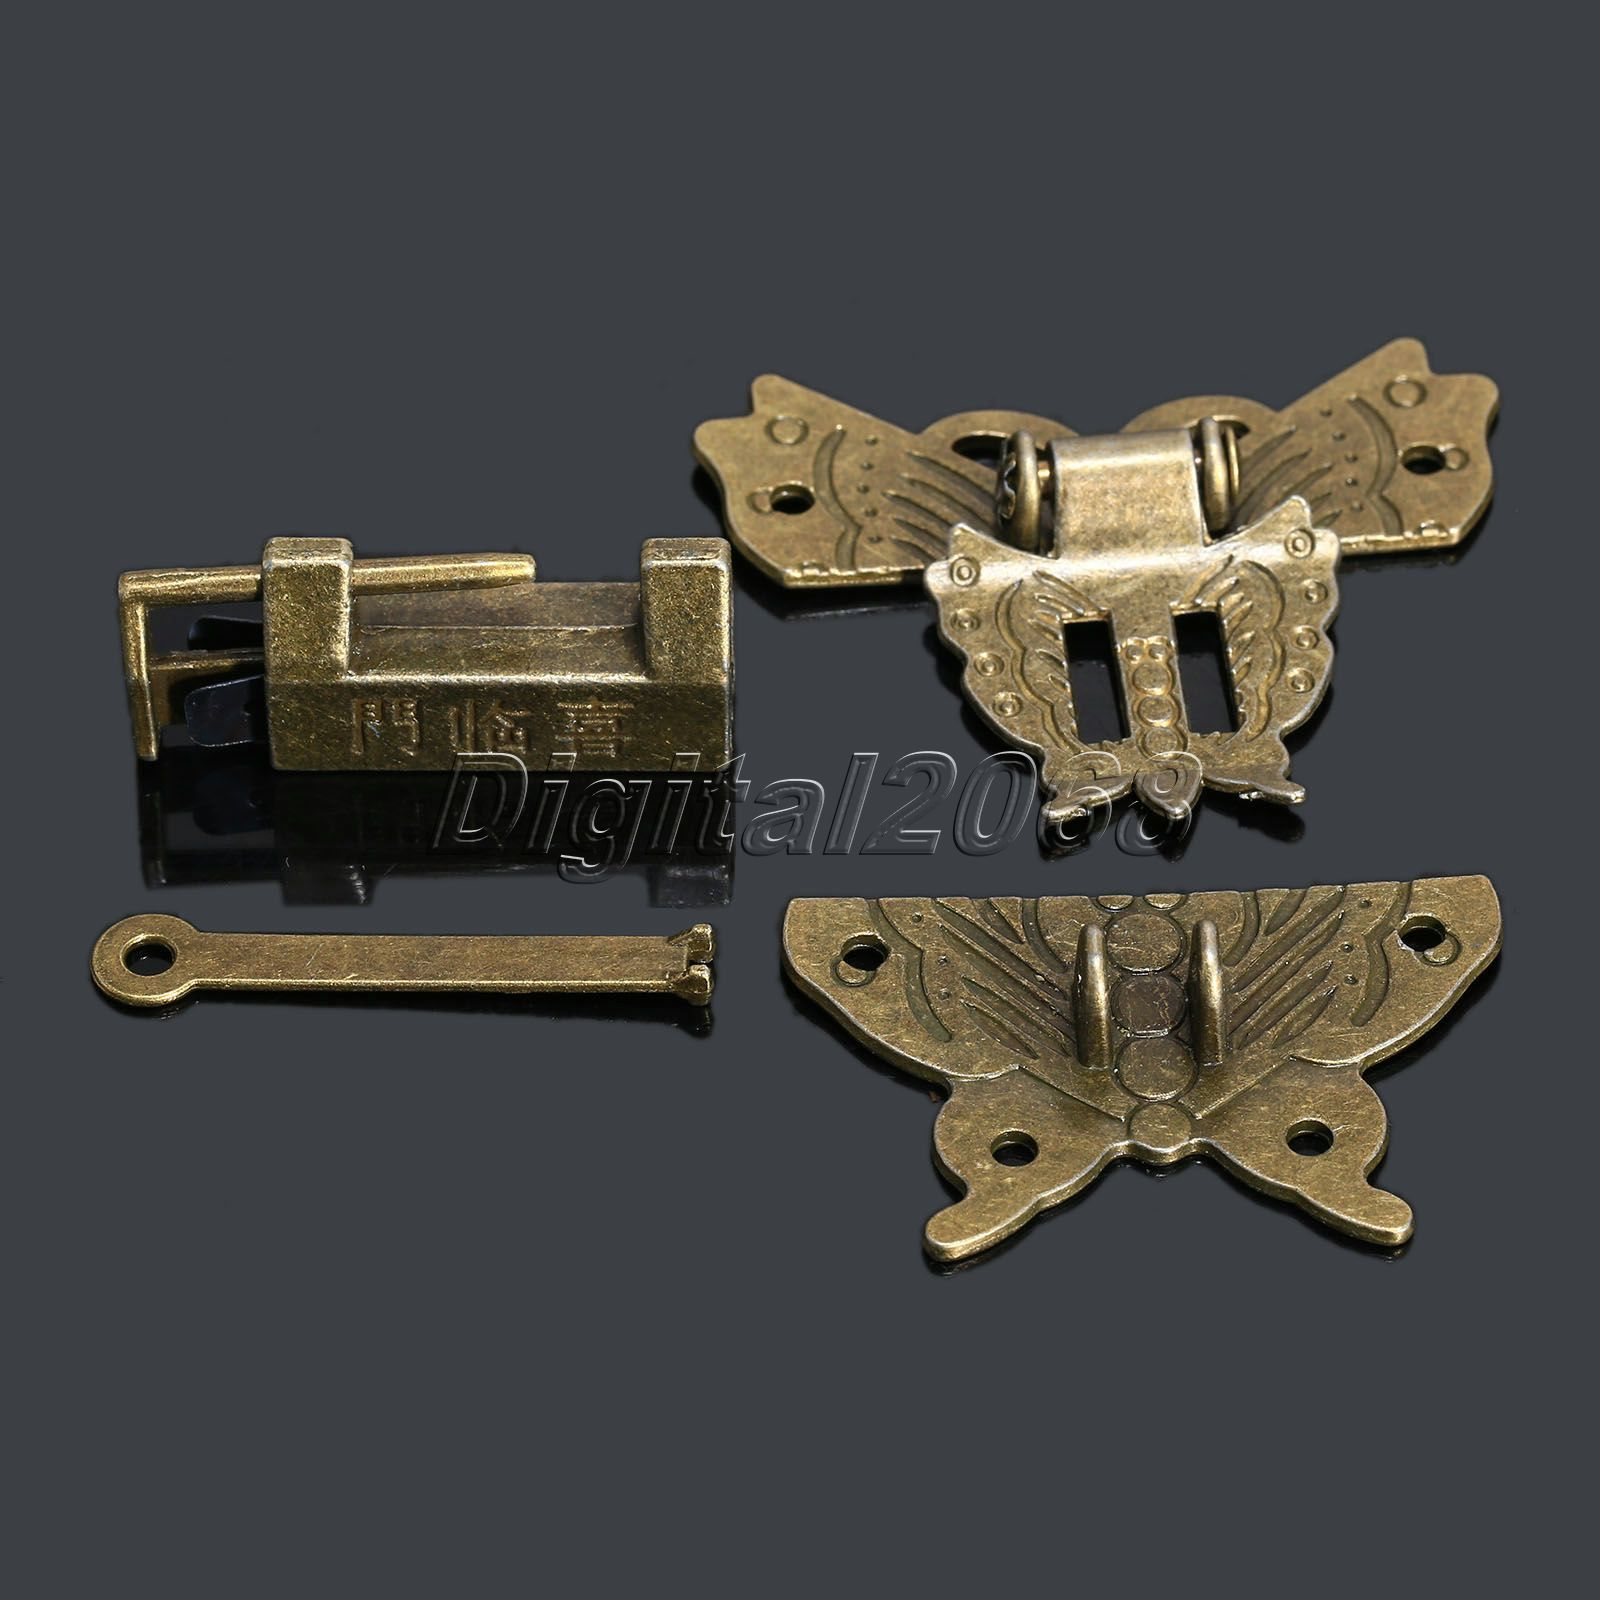 6Pcs Antique Latches Jewelry Gift Wooden Suitcase Case Hasp Antique Decorative Latch Hook Lock for Box Craft+Screws+Lock 59x55mm<br><br>Aliexpress